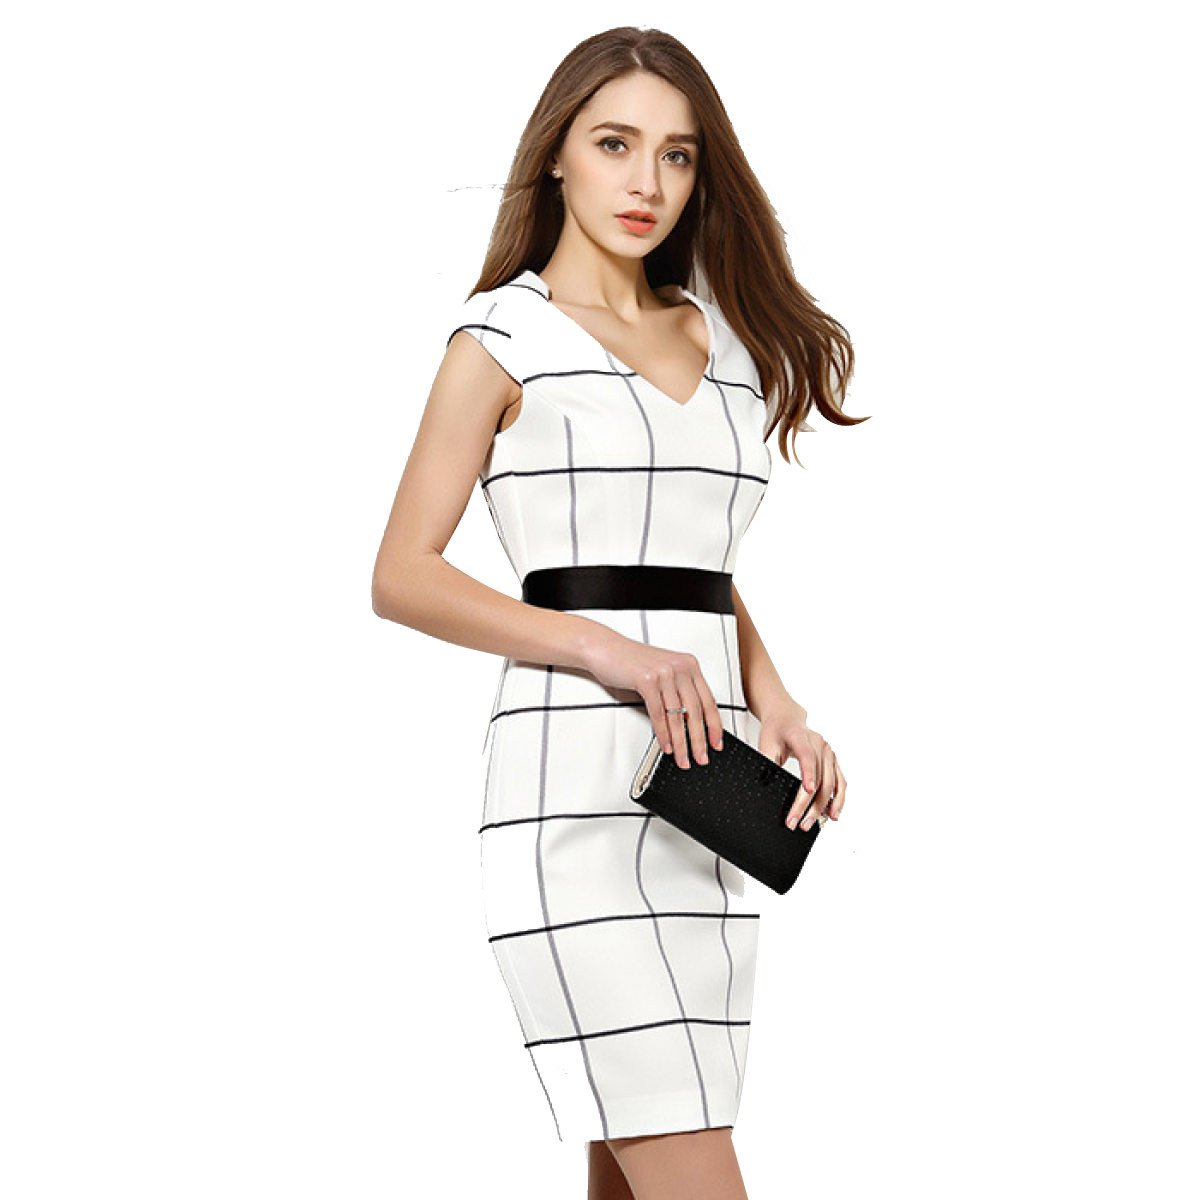 China Palaeowind Women 's Spring And Summer Fashion Simple Checked Waist Dress,White-L